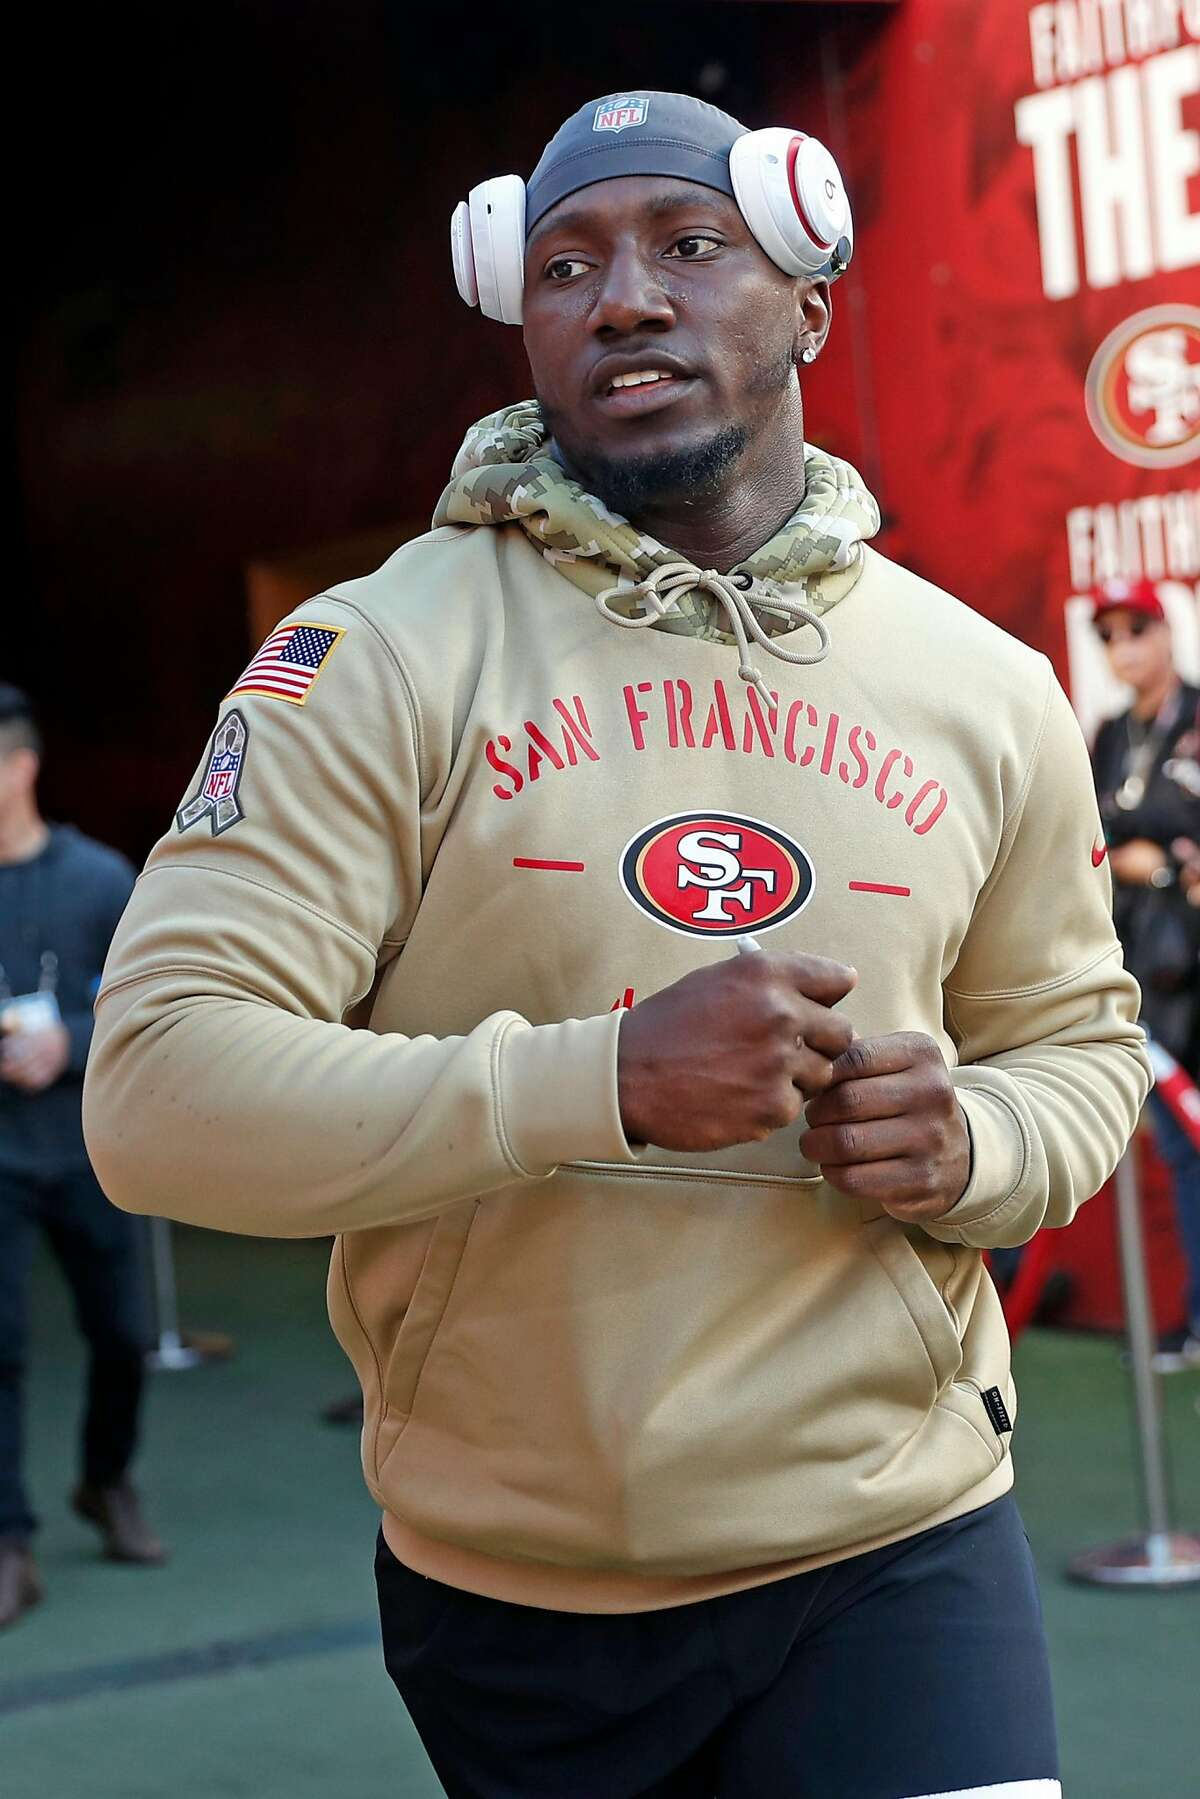 San Francisco 49ers' Deebo Samuel before playing against Green Bay Packers during NFL game at Levi's Stadium in Santa Clara, Calif., on Sunday, November 24, 2019.